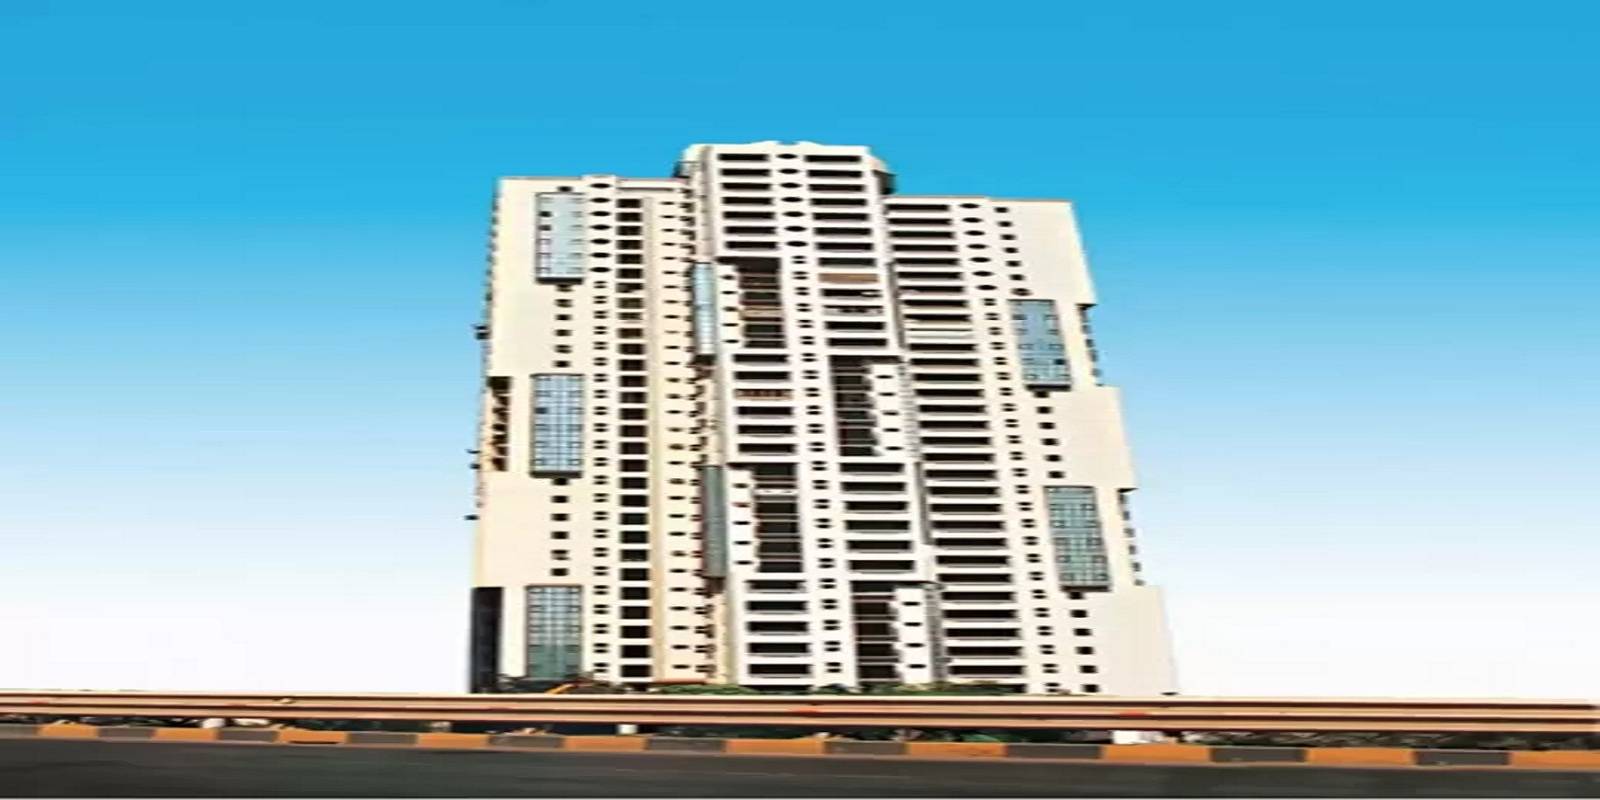 mittal phoenix tower project project large image1